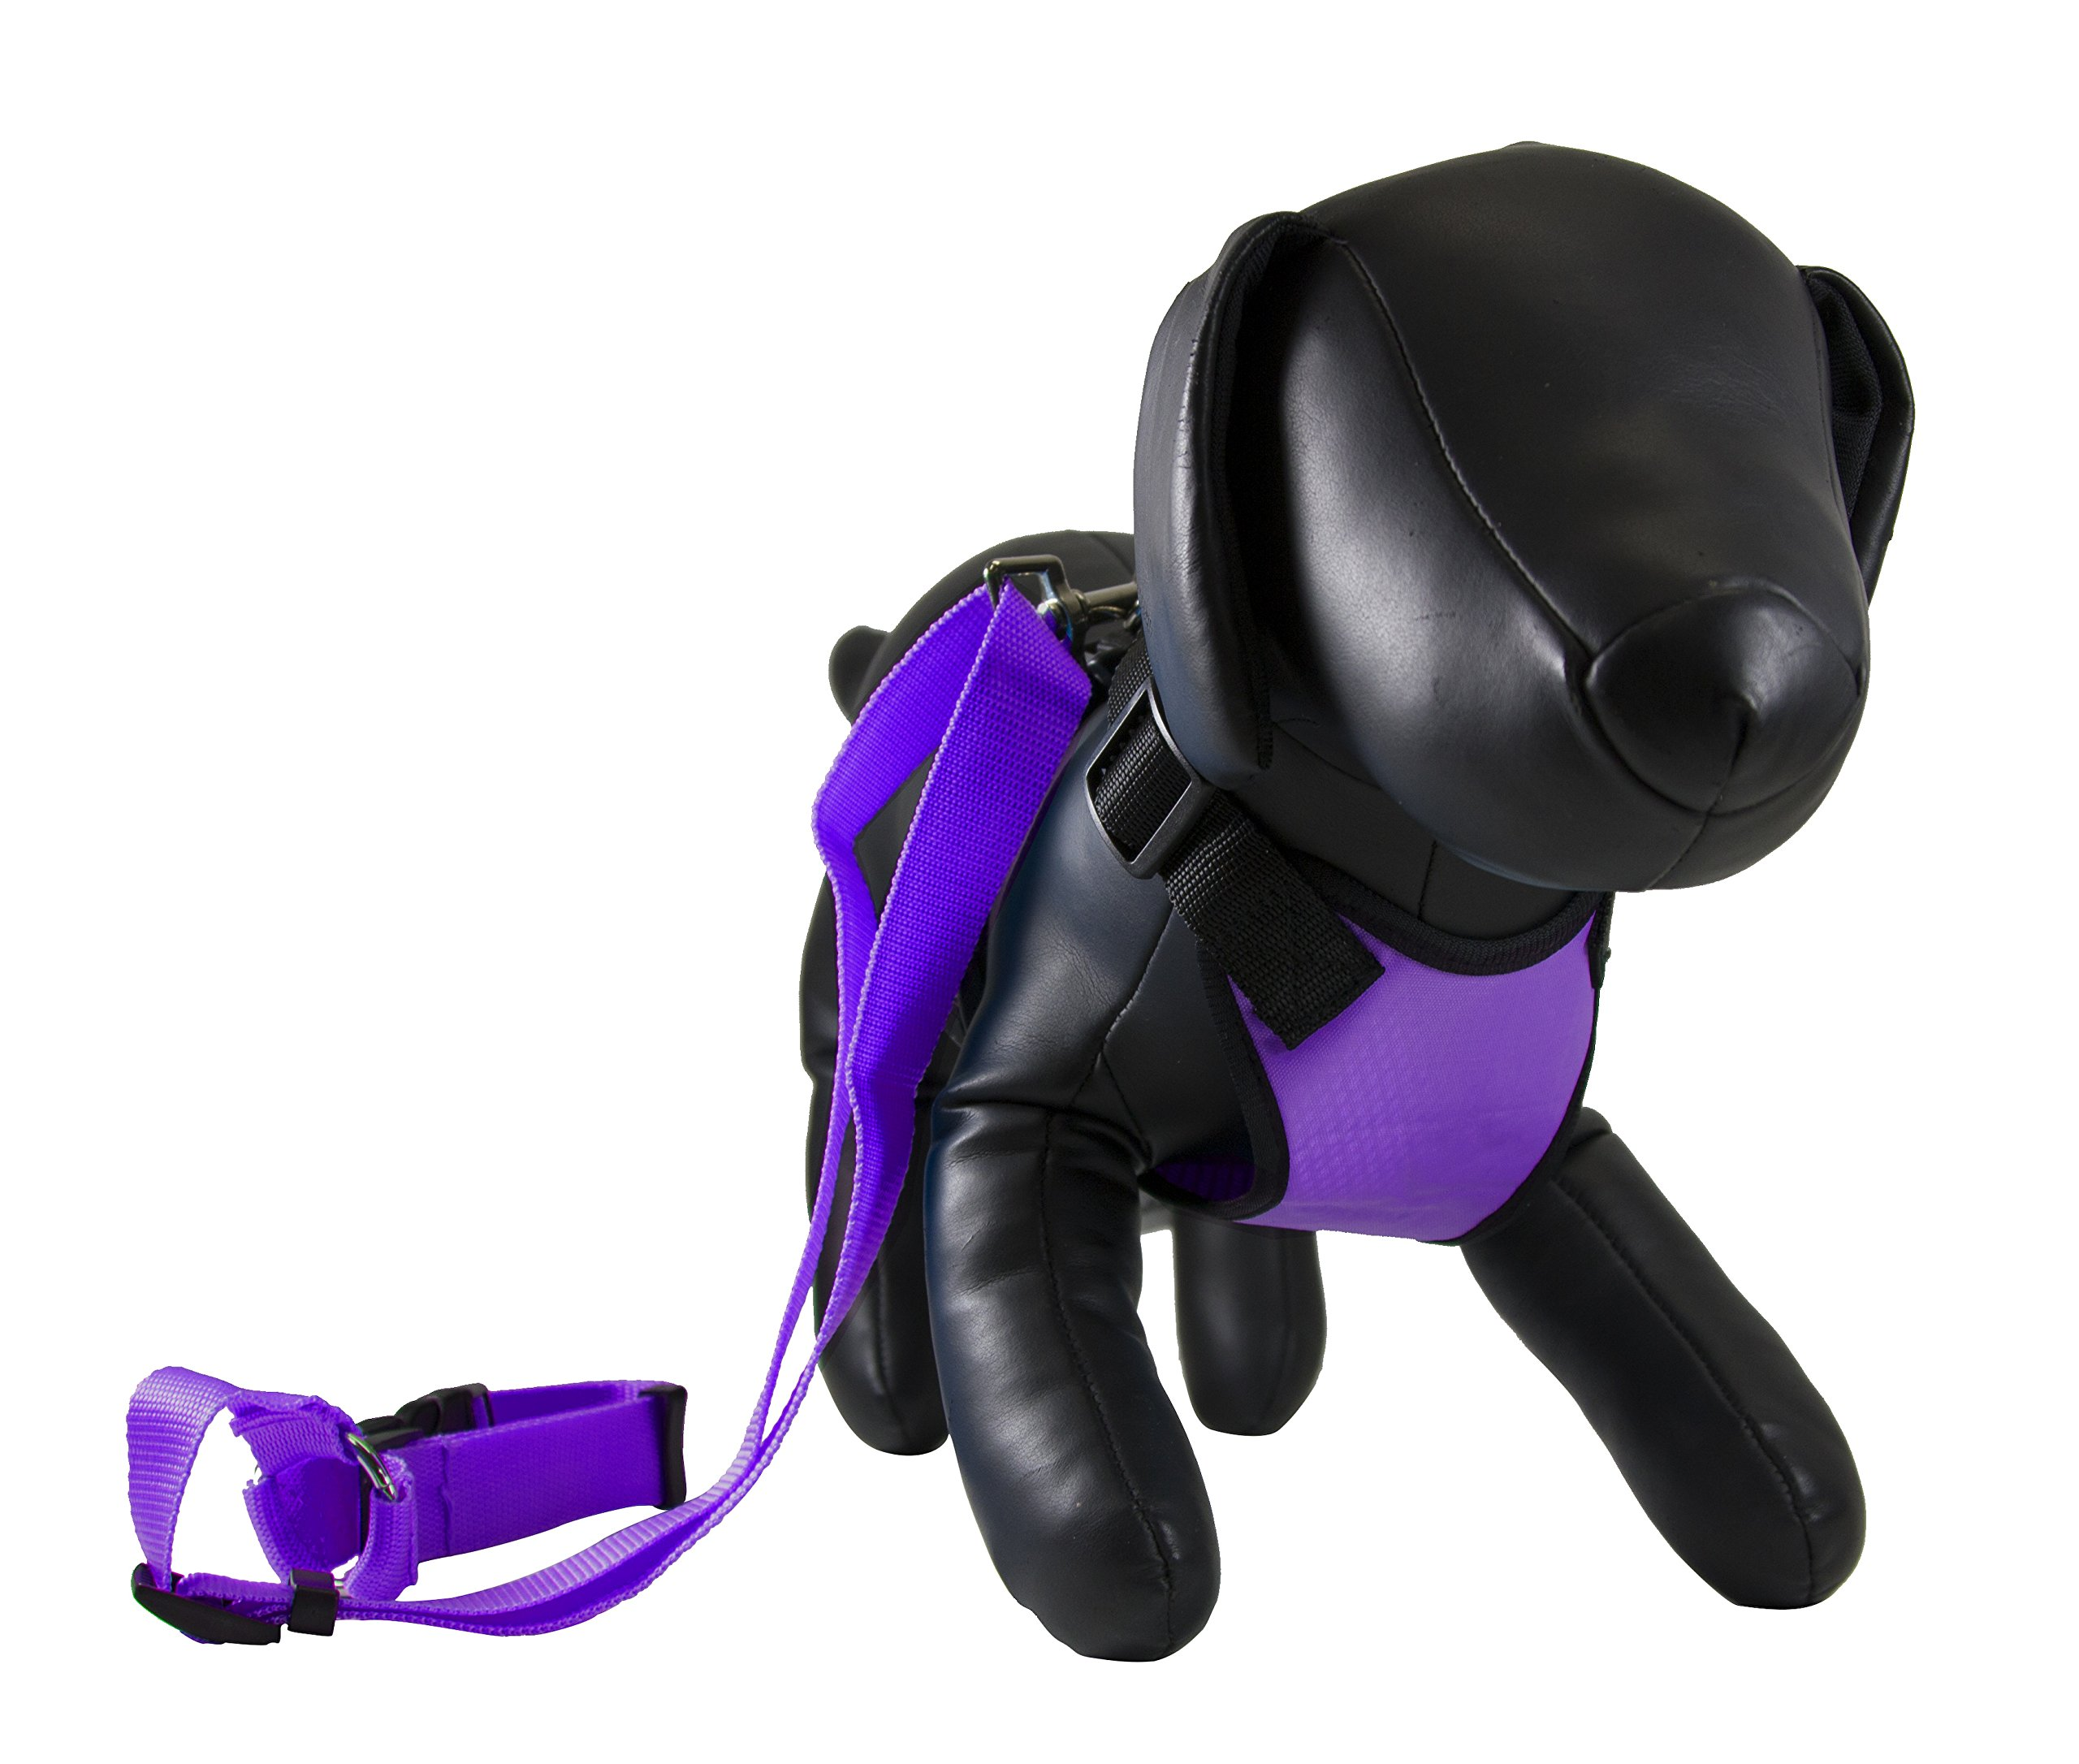 Petcessory Travel Harness with Leash Purple 14'' - 15'' by Petcessory